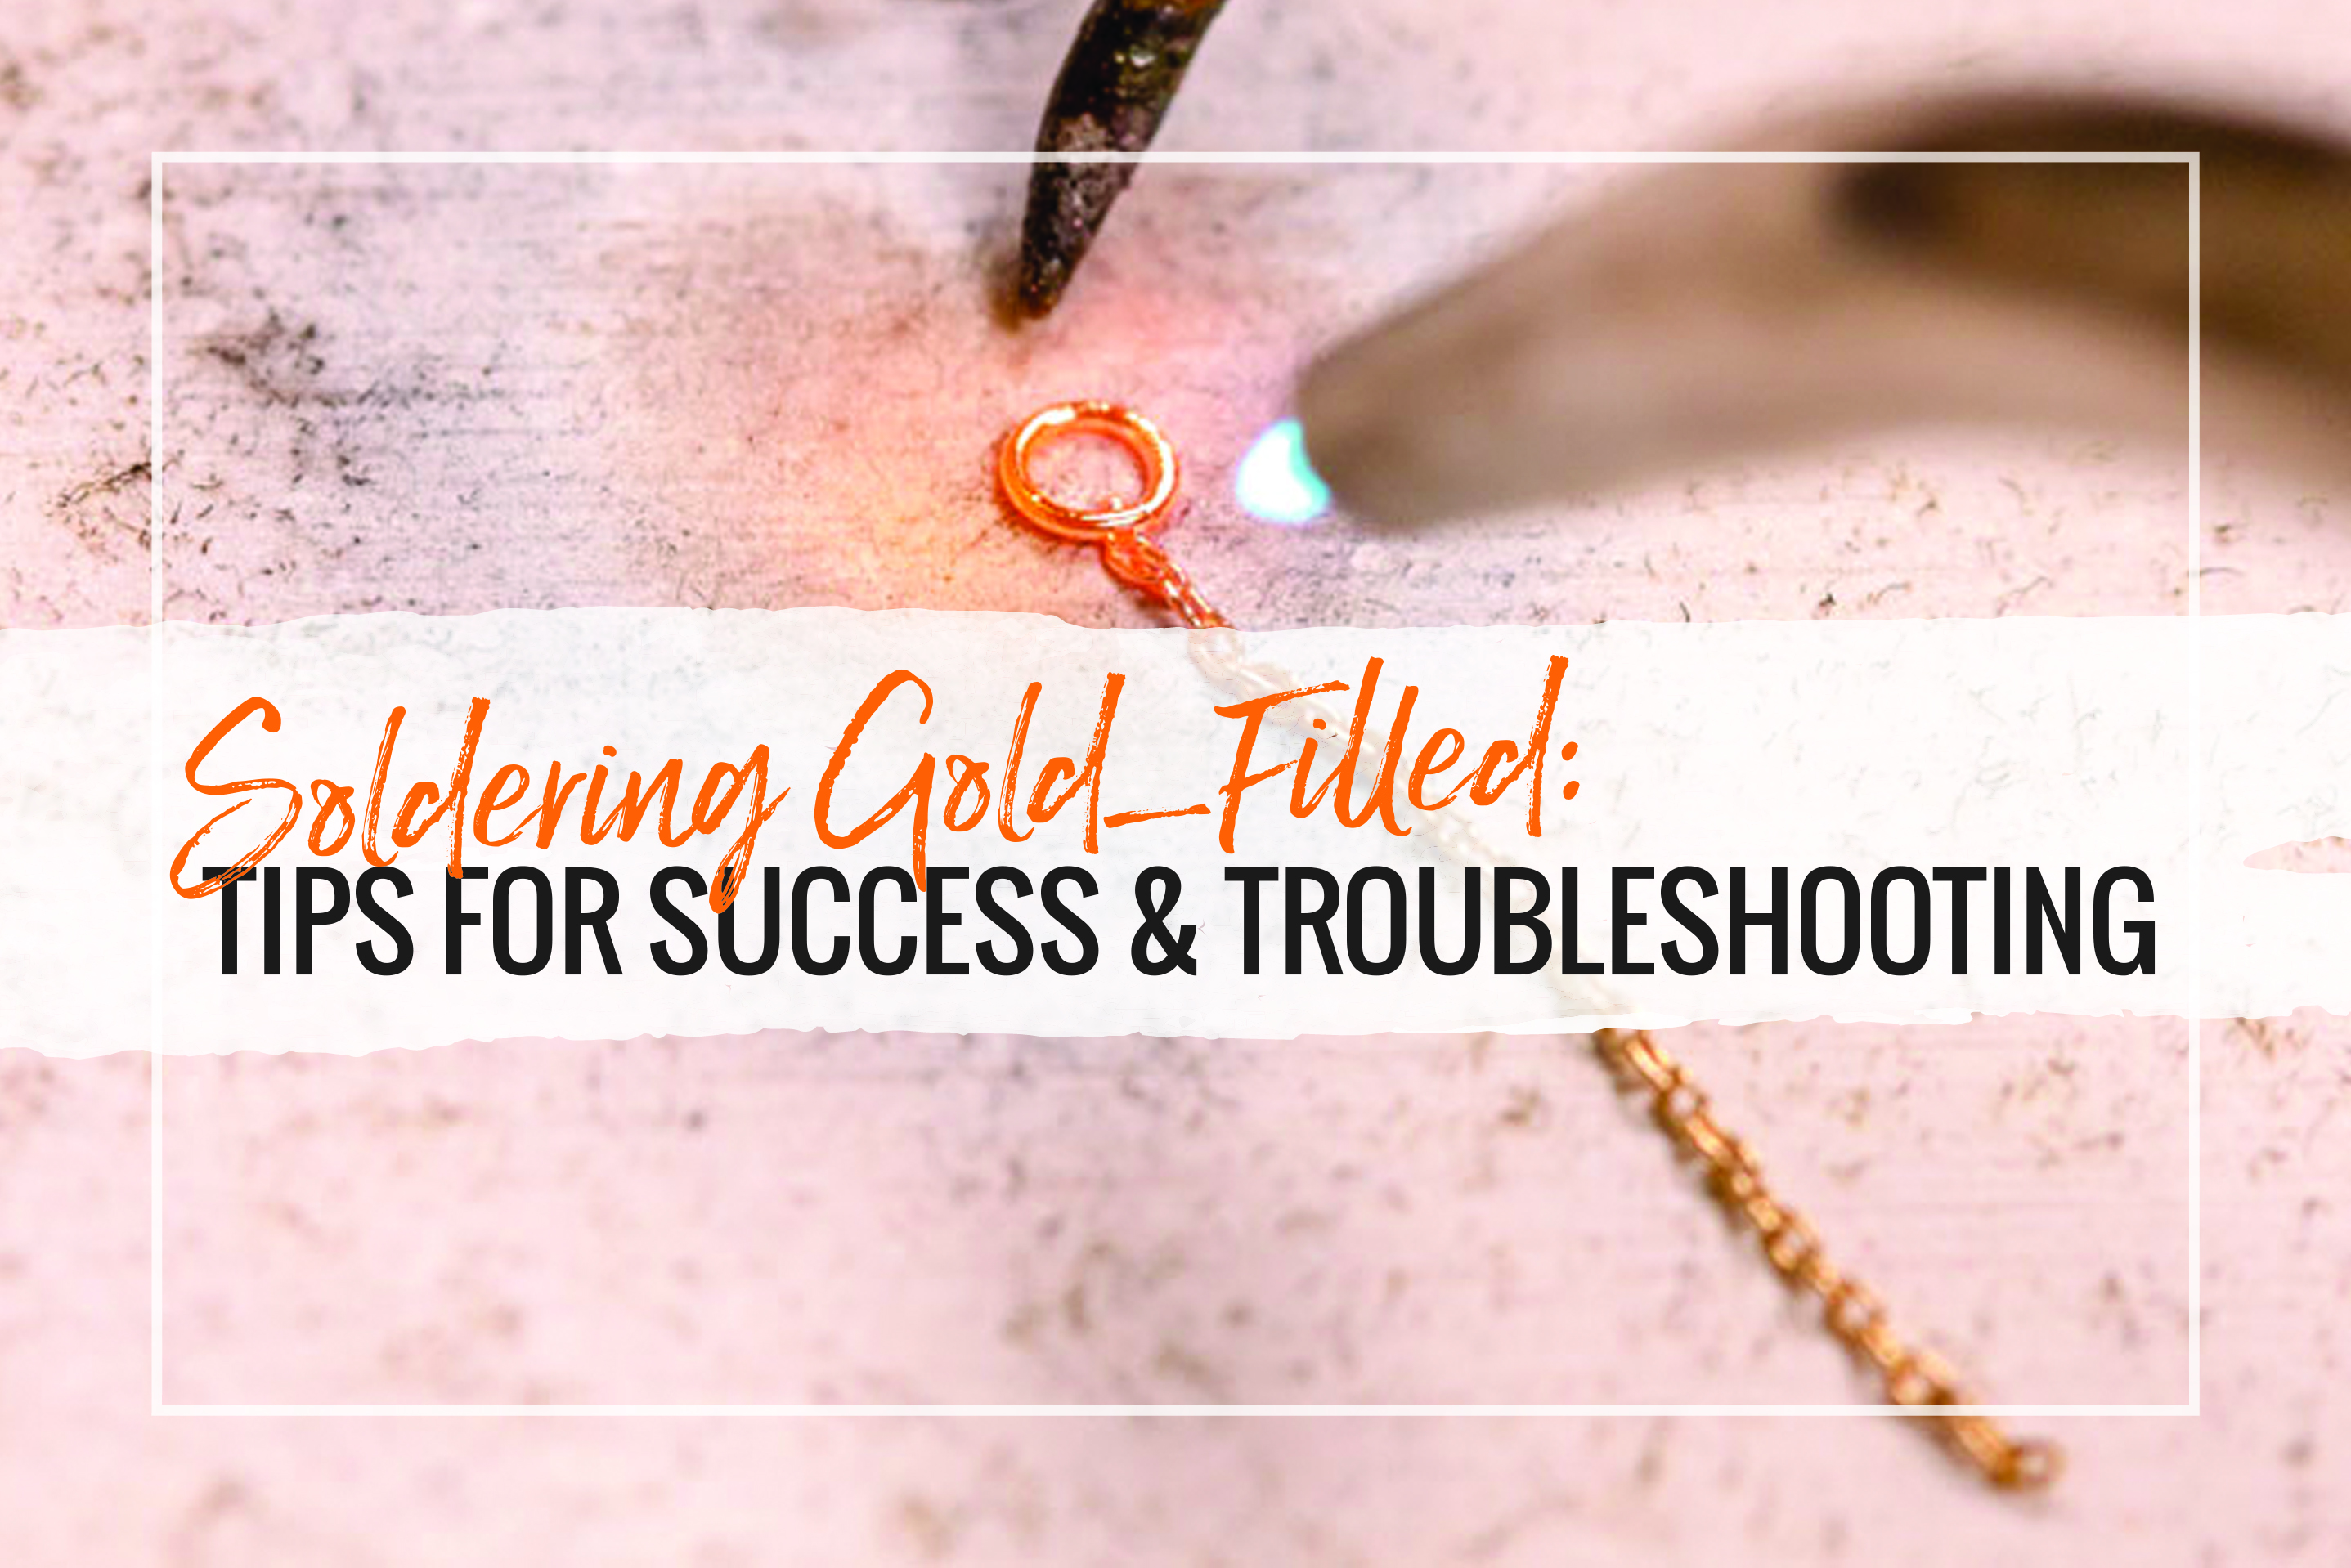 Soldering gold-filled can be problematic. It requires knowledge and training. Read this article for how to solder gold-filled jewelry.